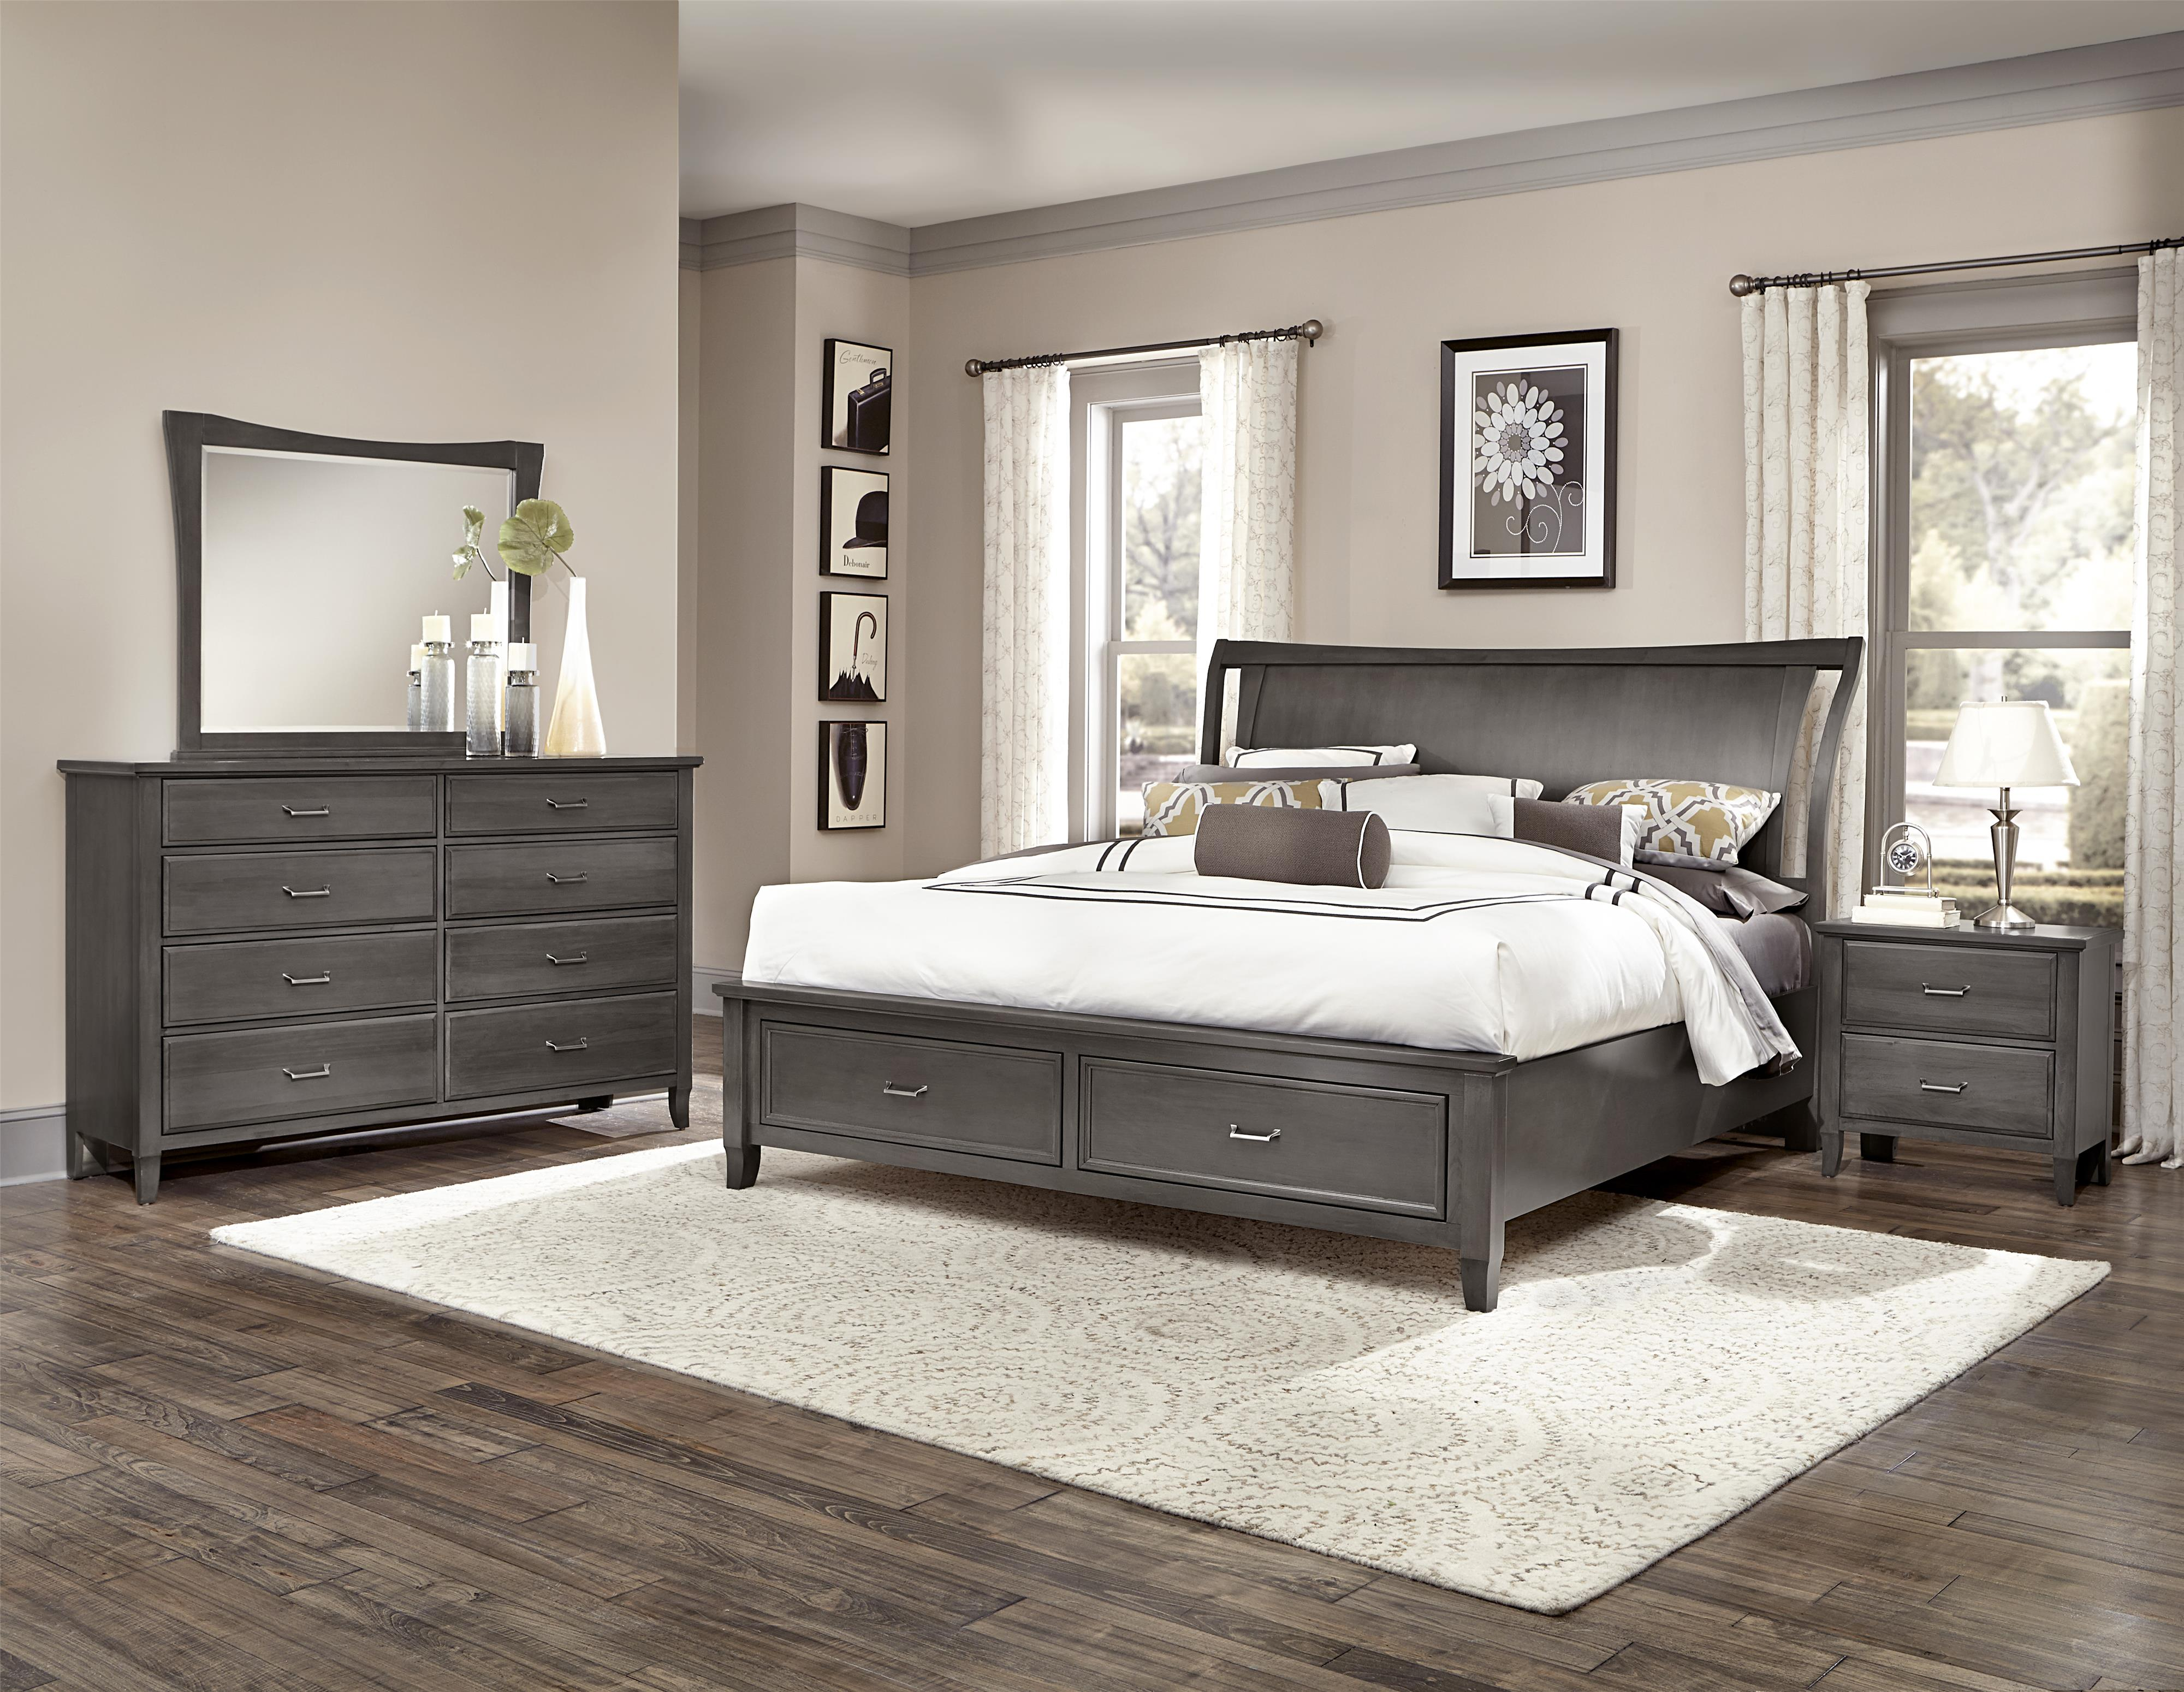 Vaughan Bassett Commentary Queen Bedroom Group - Item Number: 394 Q Bedroom Group 3